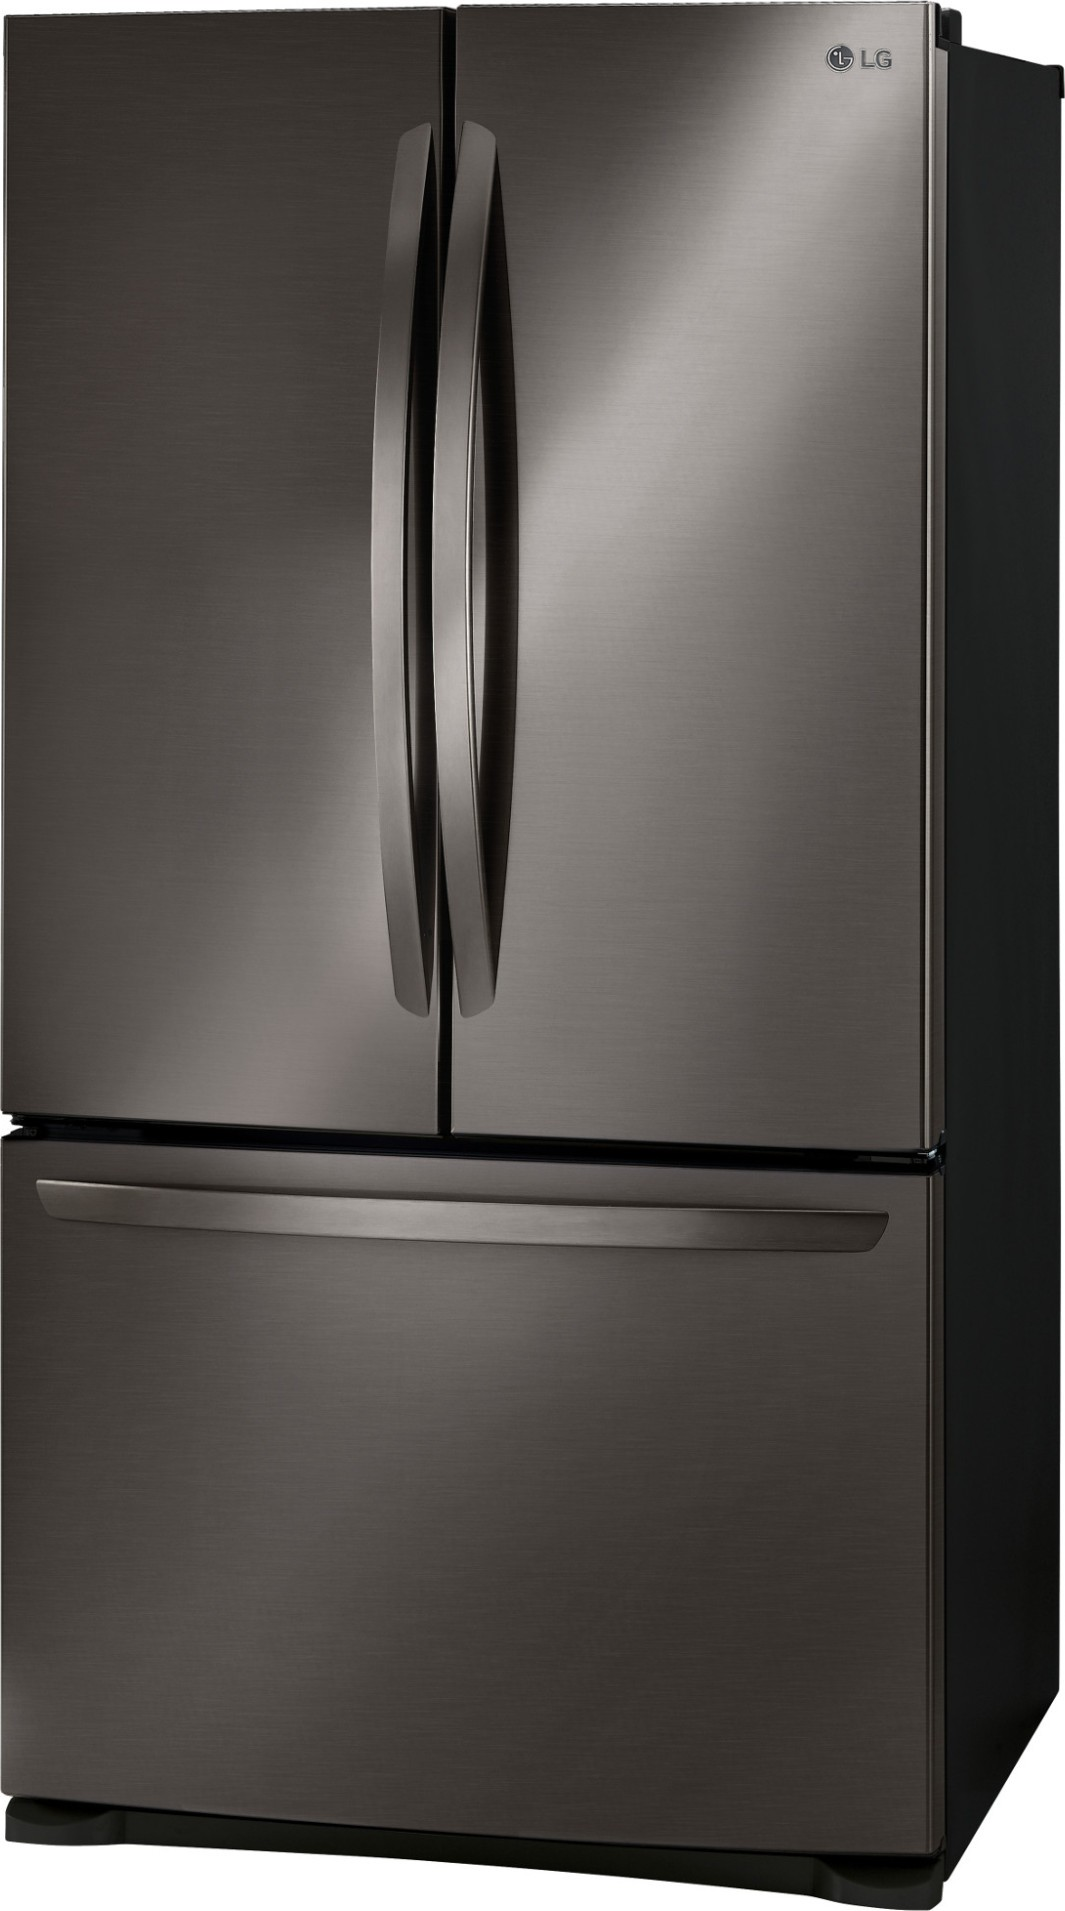 doors ft lg black depth door instaview pdp cu in counter stainless refrigerator french sd steel